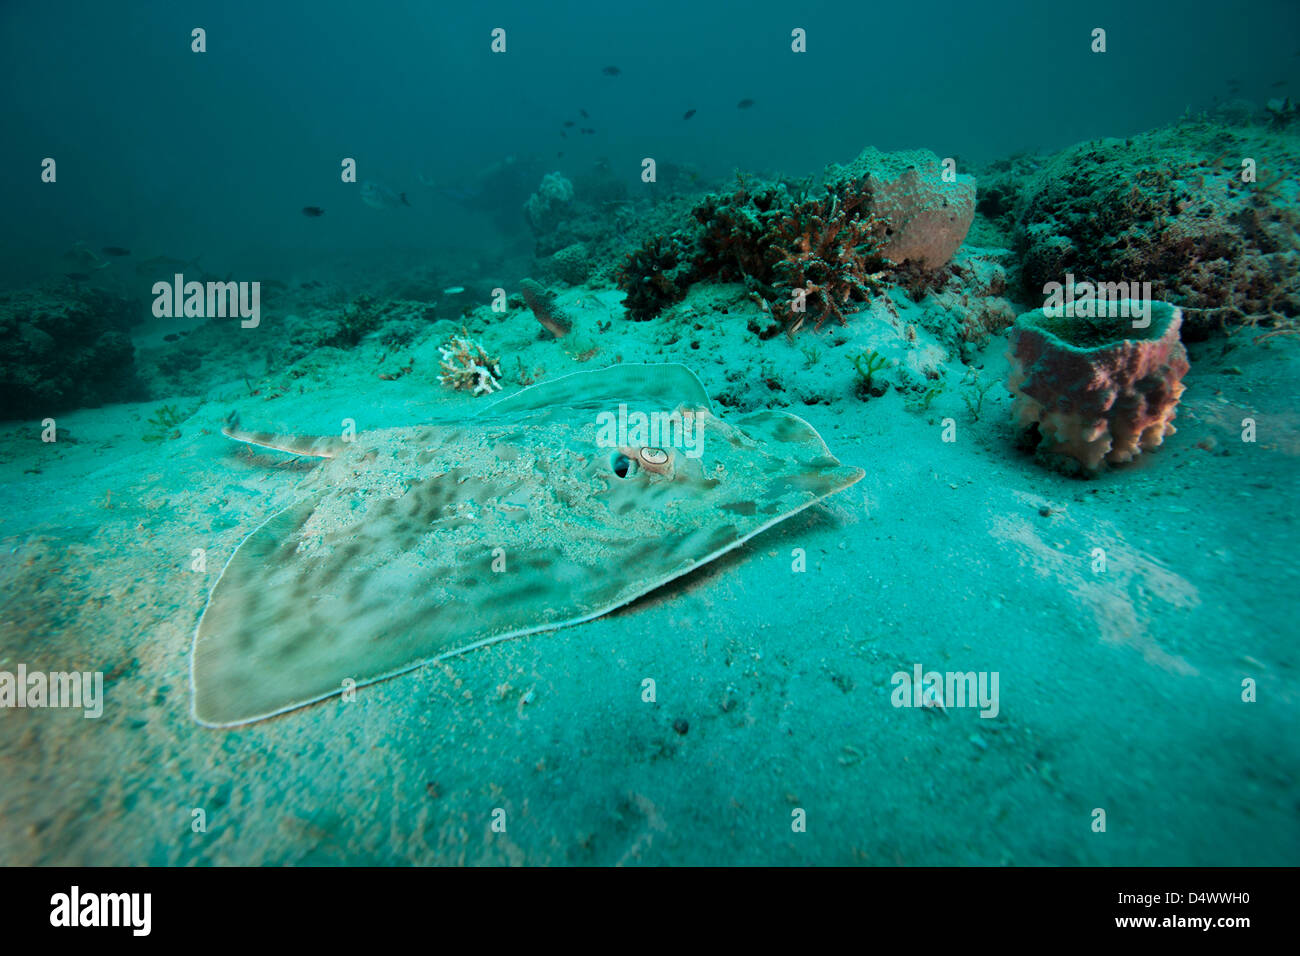 A Southern Stingray on the sandy bottom off the coast of Panama City, Florida. - Stock Image